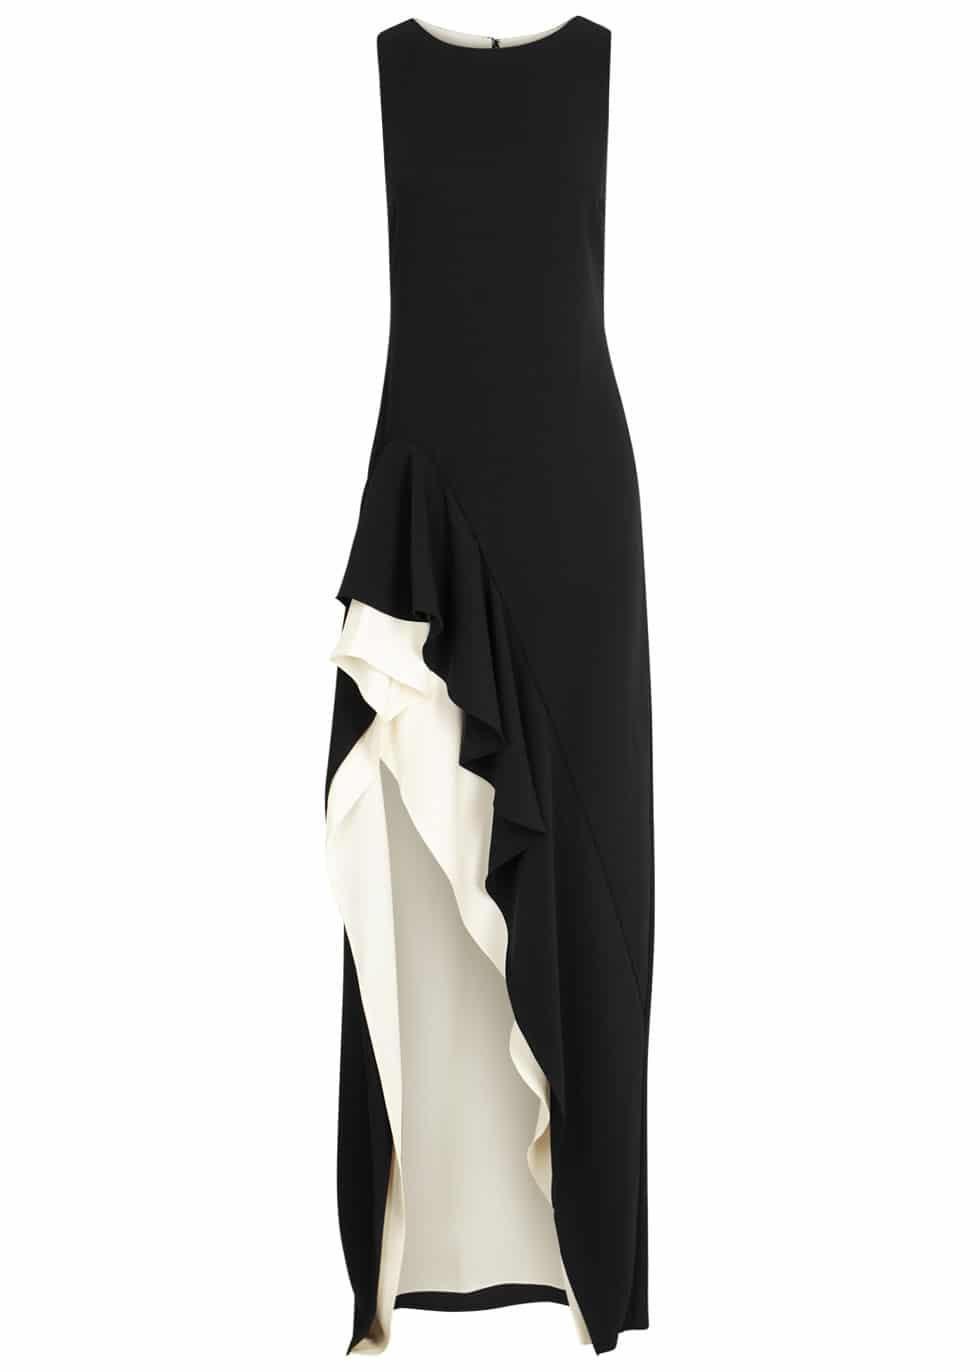 HALSTON HERITAGE Monochrome Ruffled Black Gown